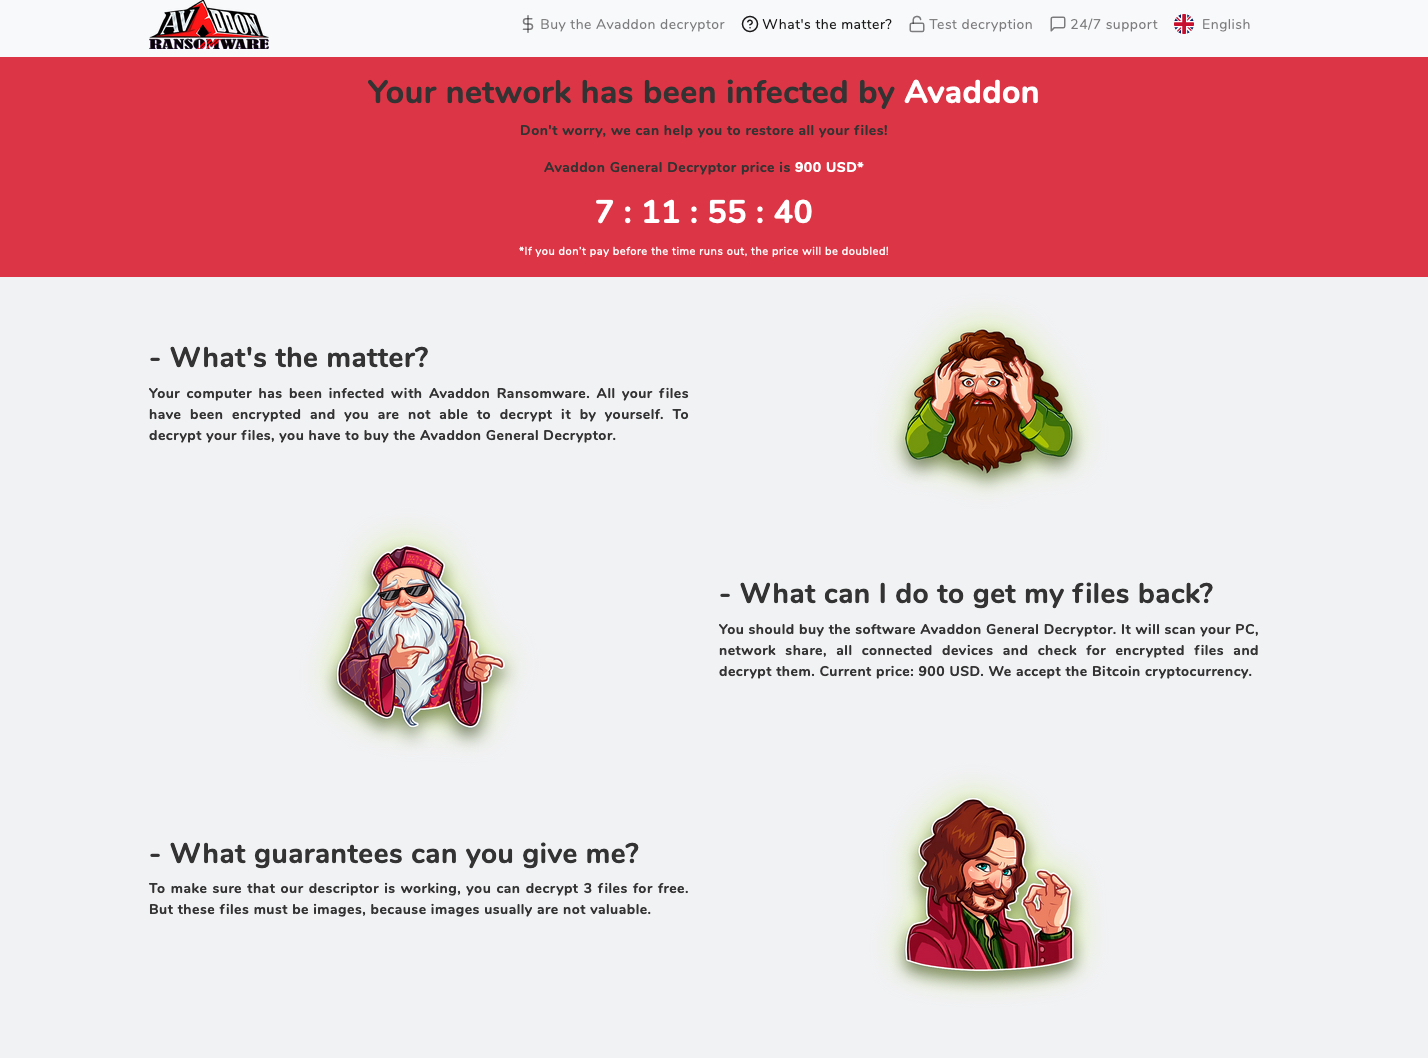 Evolution and rise of the Avaddon Ransomware-as-a-Service